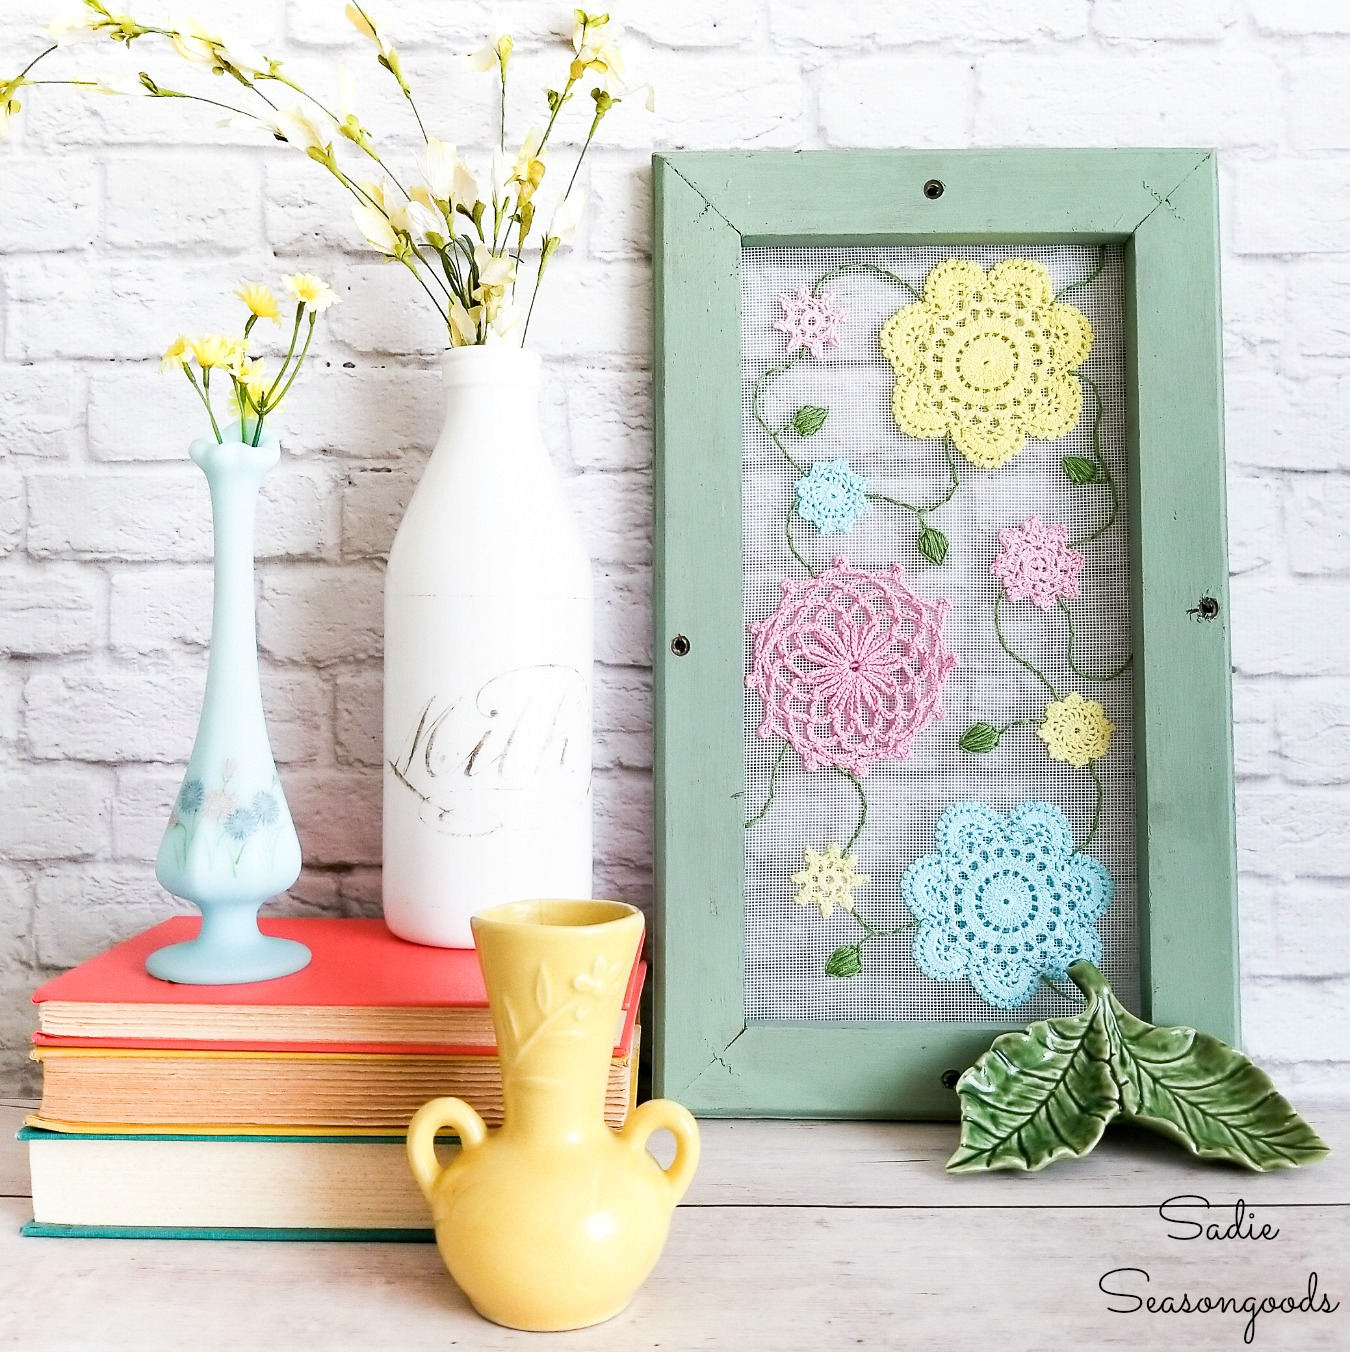 Cottage Style Decor with Vintage Doilies on a Window Screen Frame